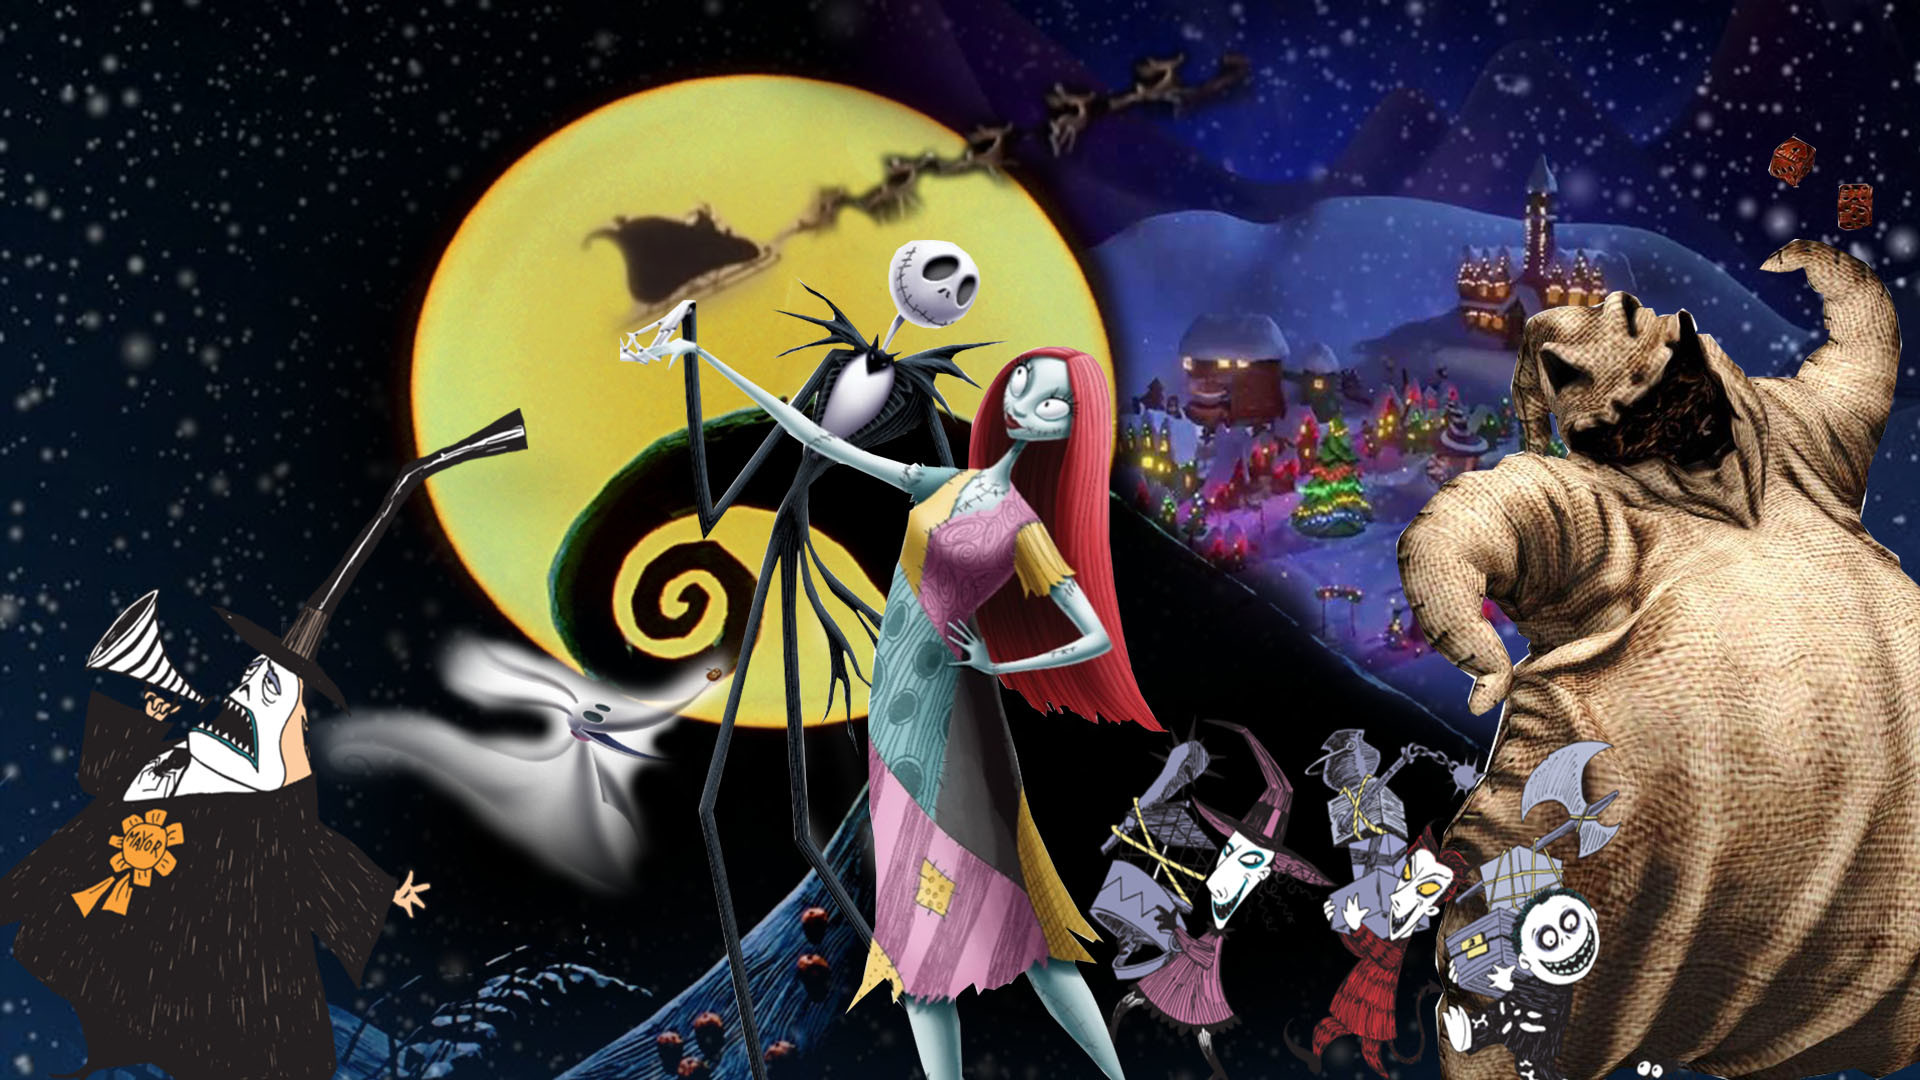 Res: 1920x1080, The Nightmare Before Christmas Wallpaper by The-Dark-Mamba-995